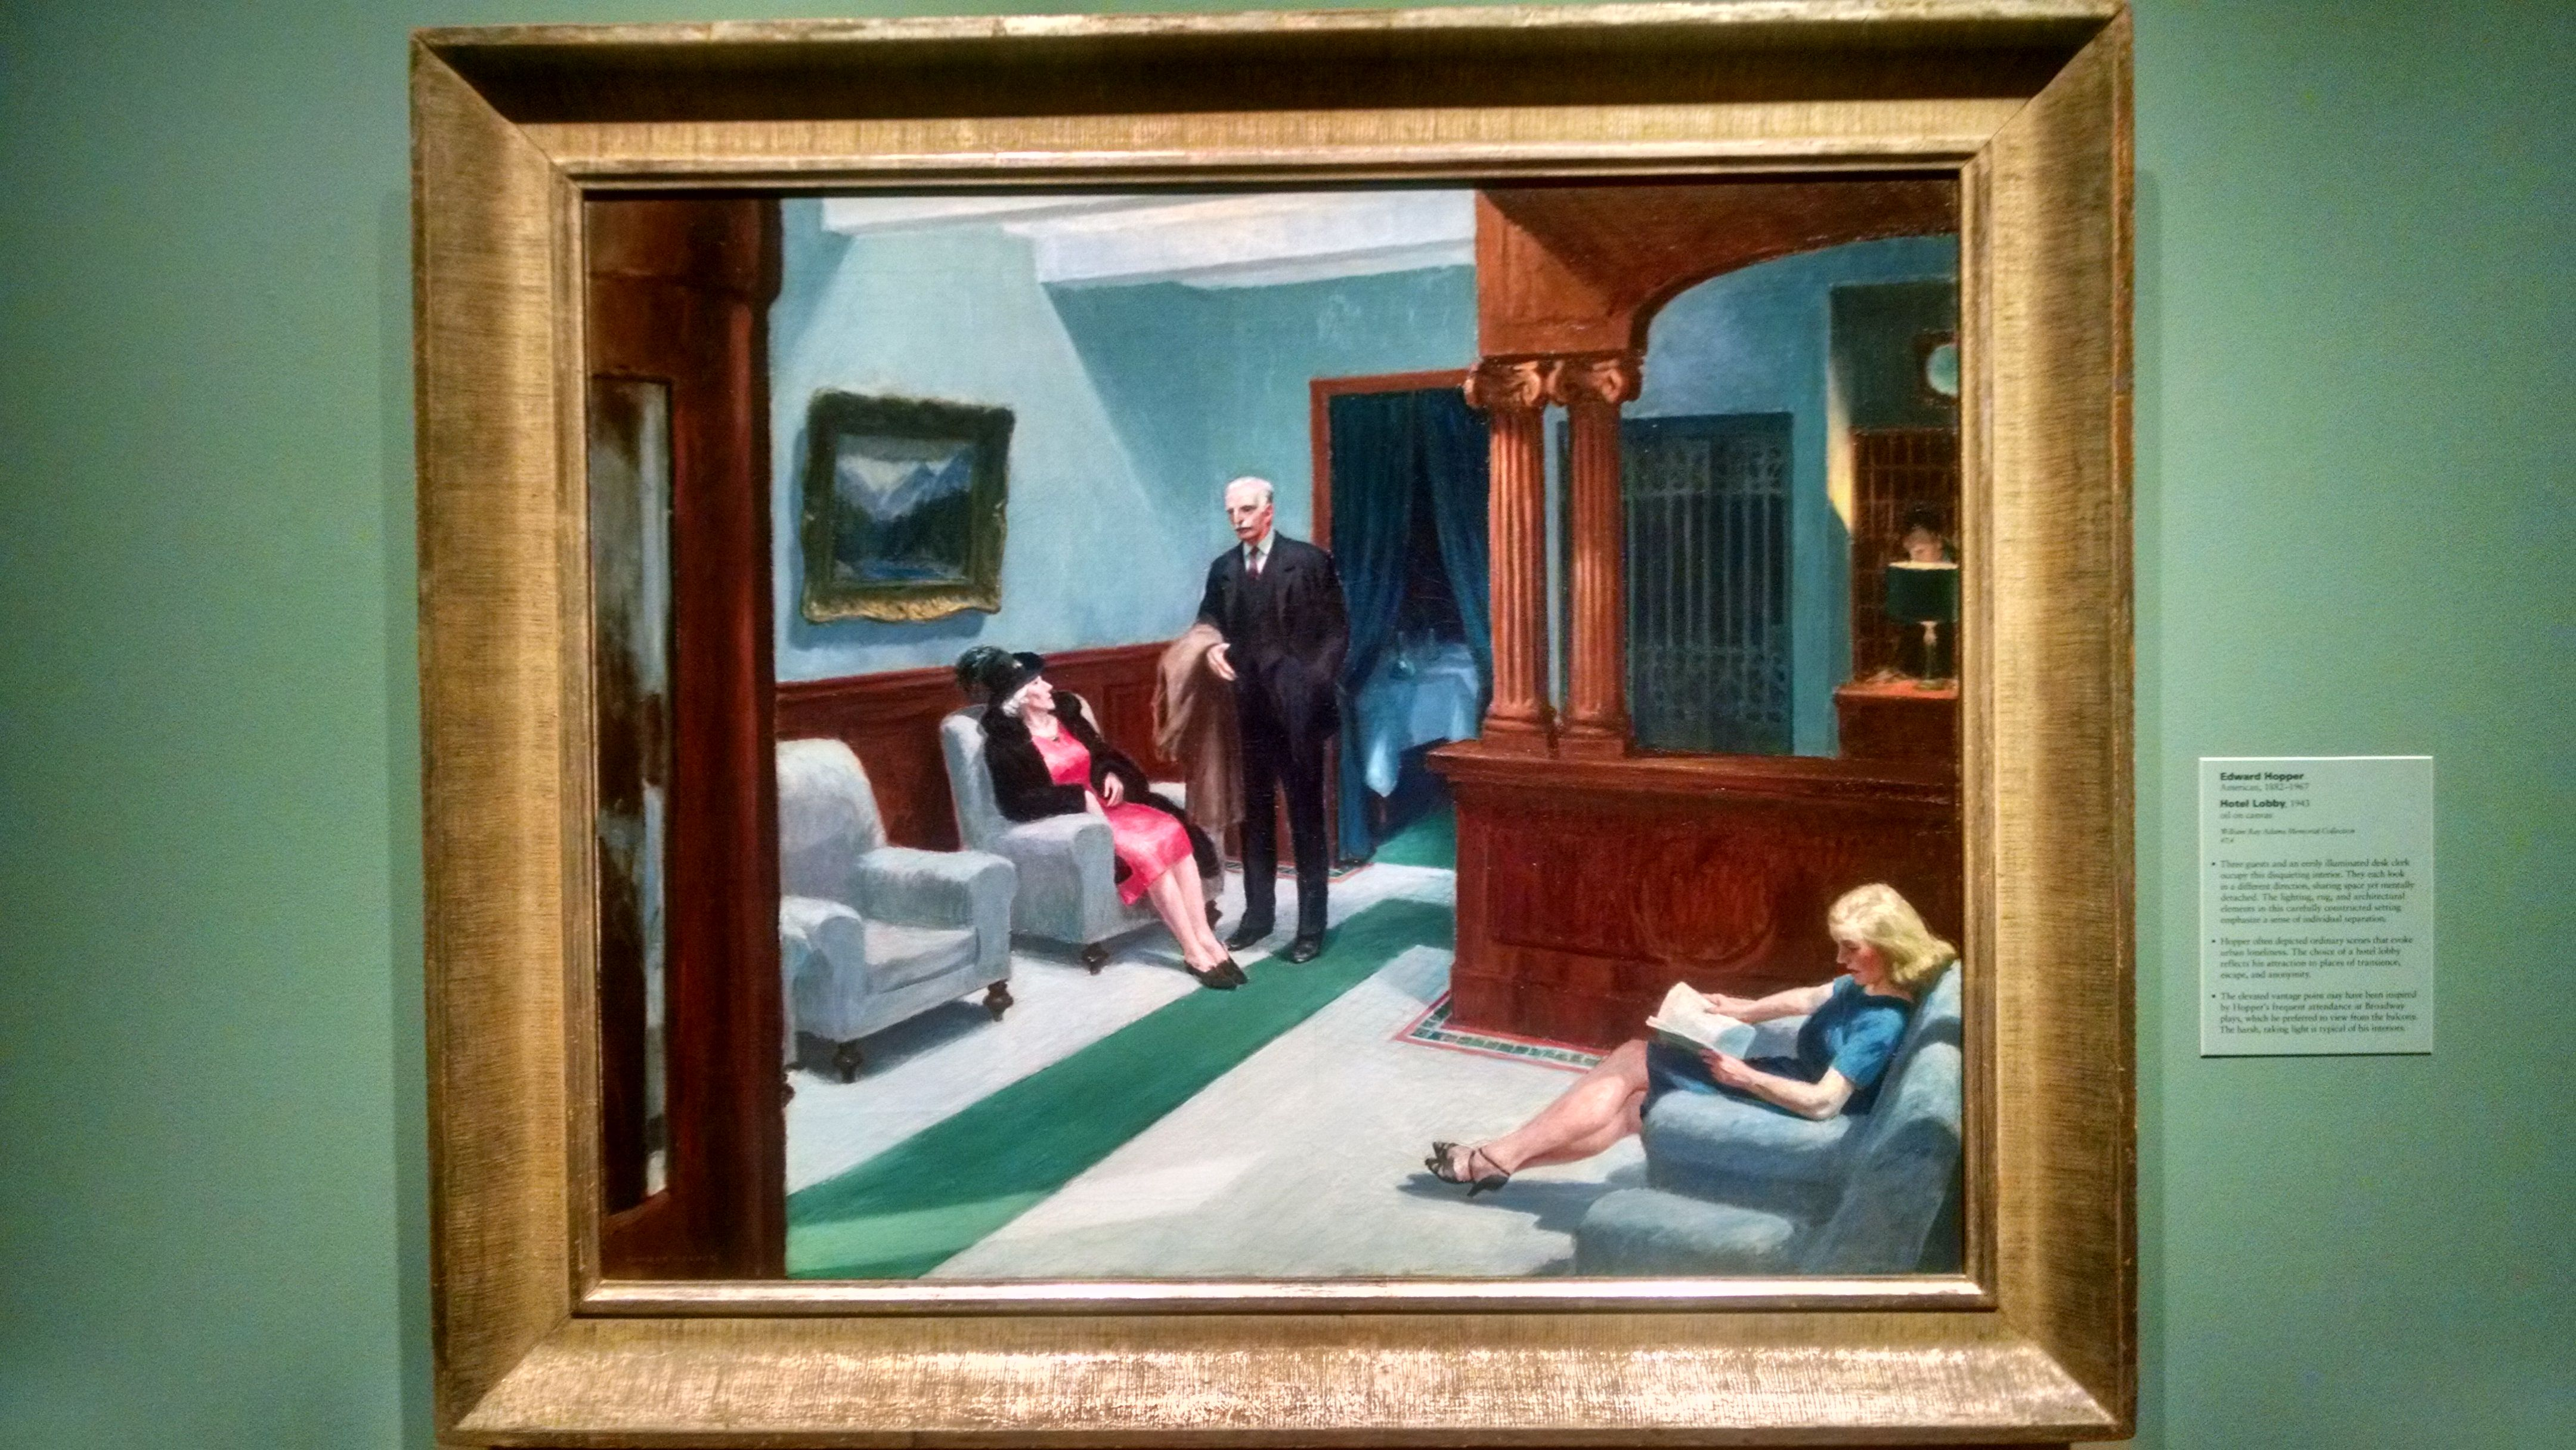 Hotel Lobby - Edward Hopper - 1943 On display at the Indianapolis ...